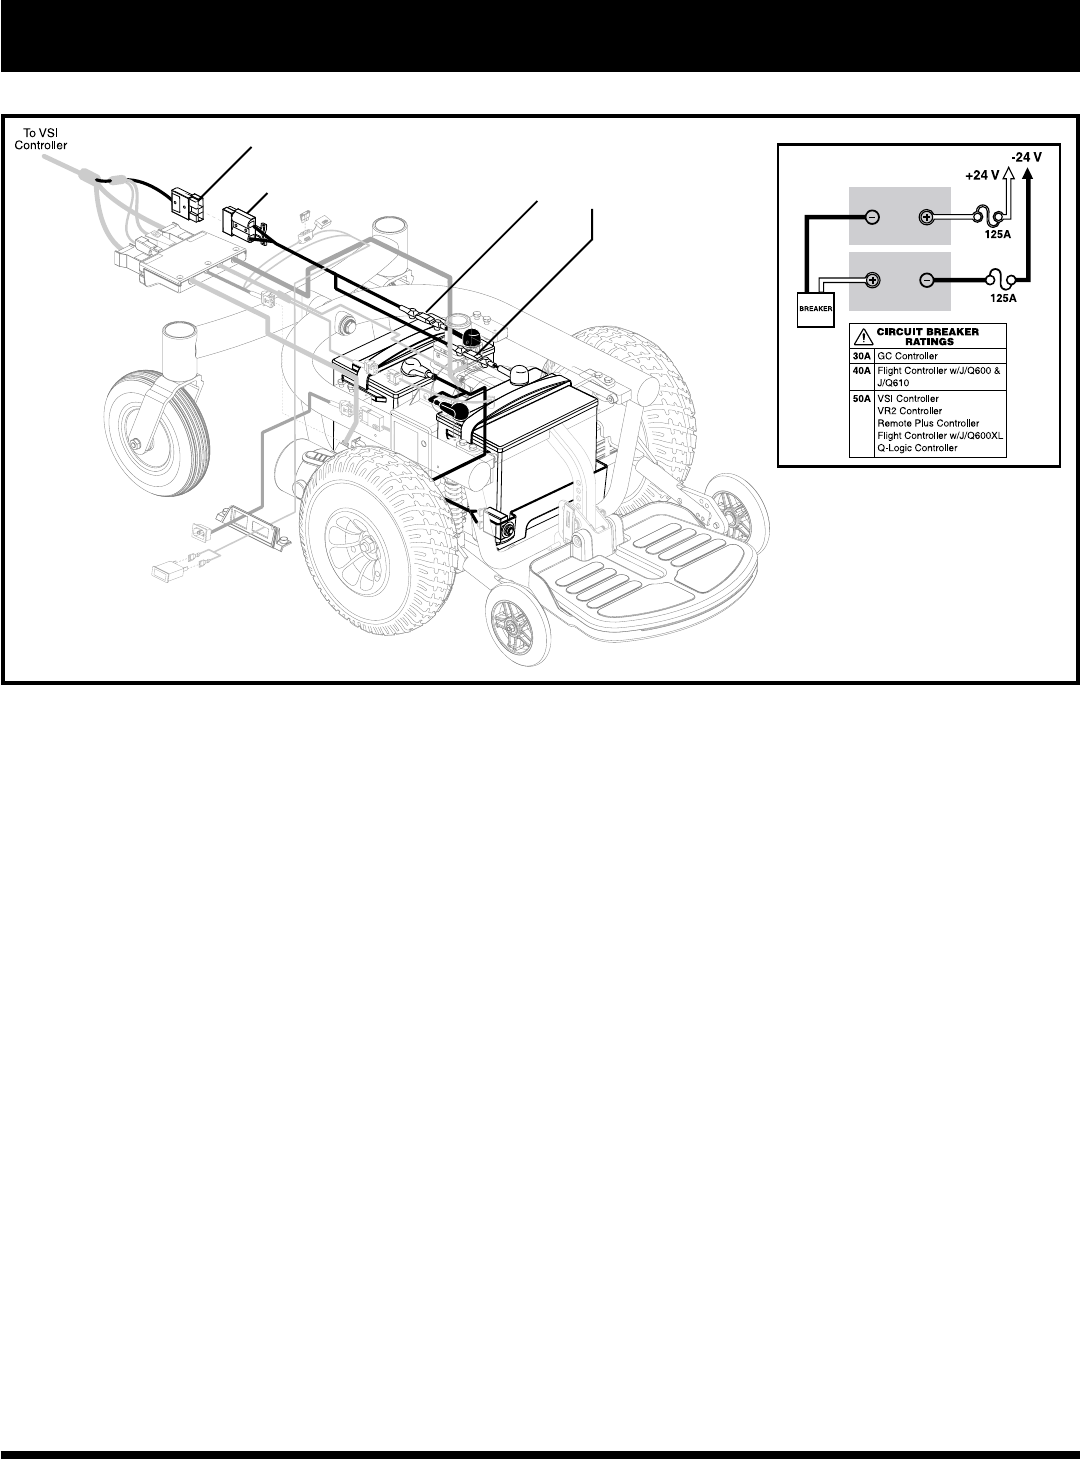 55cd0a64 9f56 4b5b bb6f 66cc883674a7 bg2c page 44 of pride mobility mobility aid 1103 ultra user guide jazzy scooter wiring diagram at creativeand.co